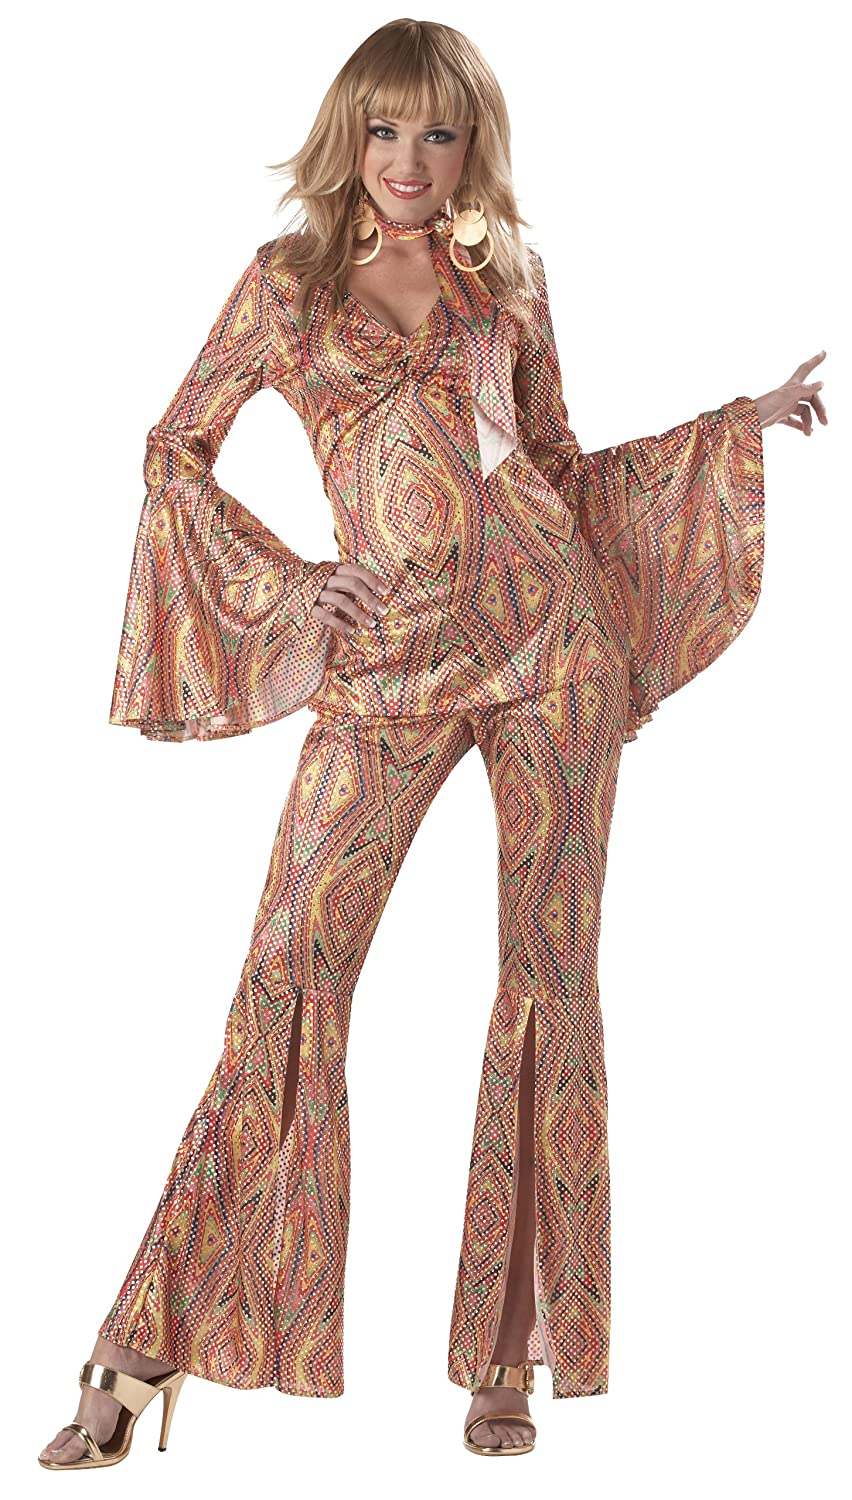 70s Costumes: Disco Costumes, Hippie Outfits California Costumes Womens Discolicious Costume $30.27 AT vintagedancer.com